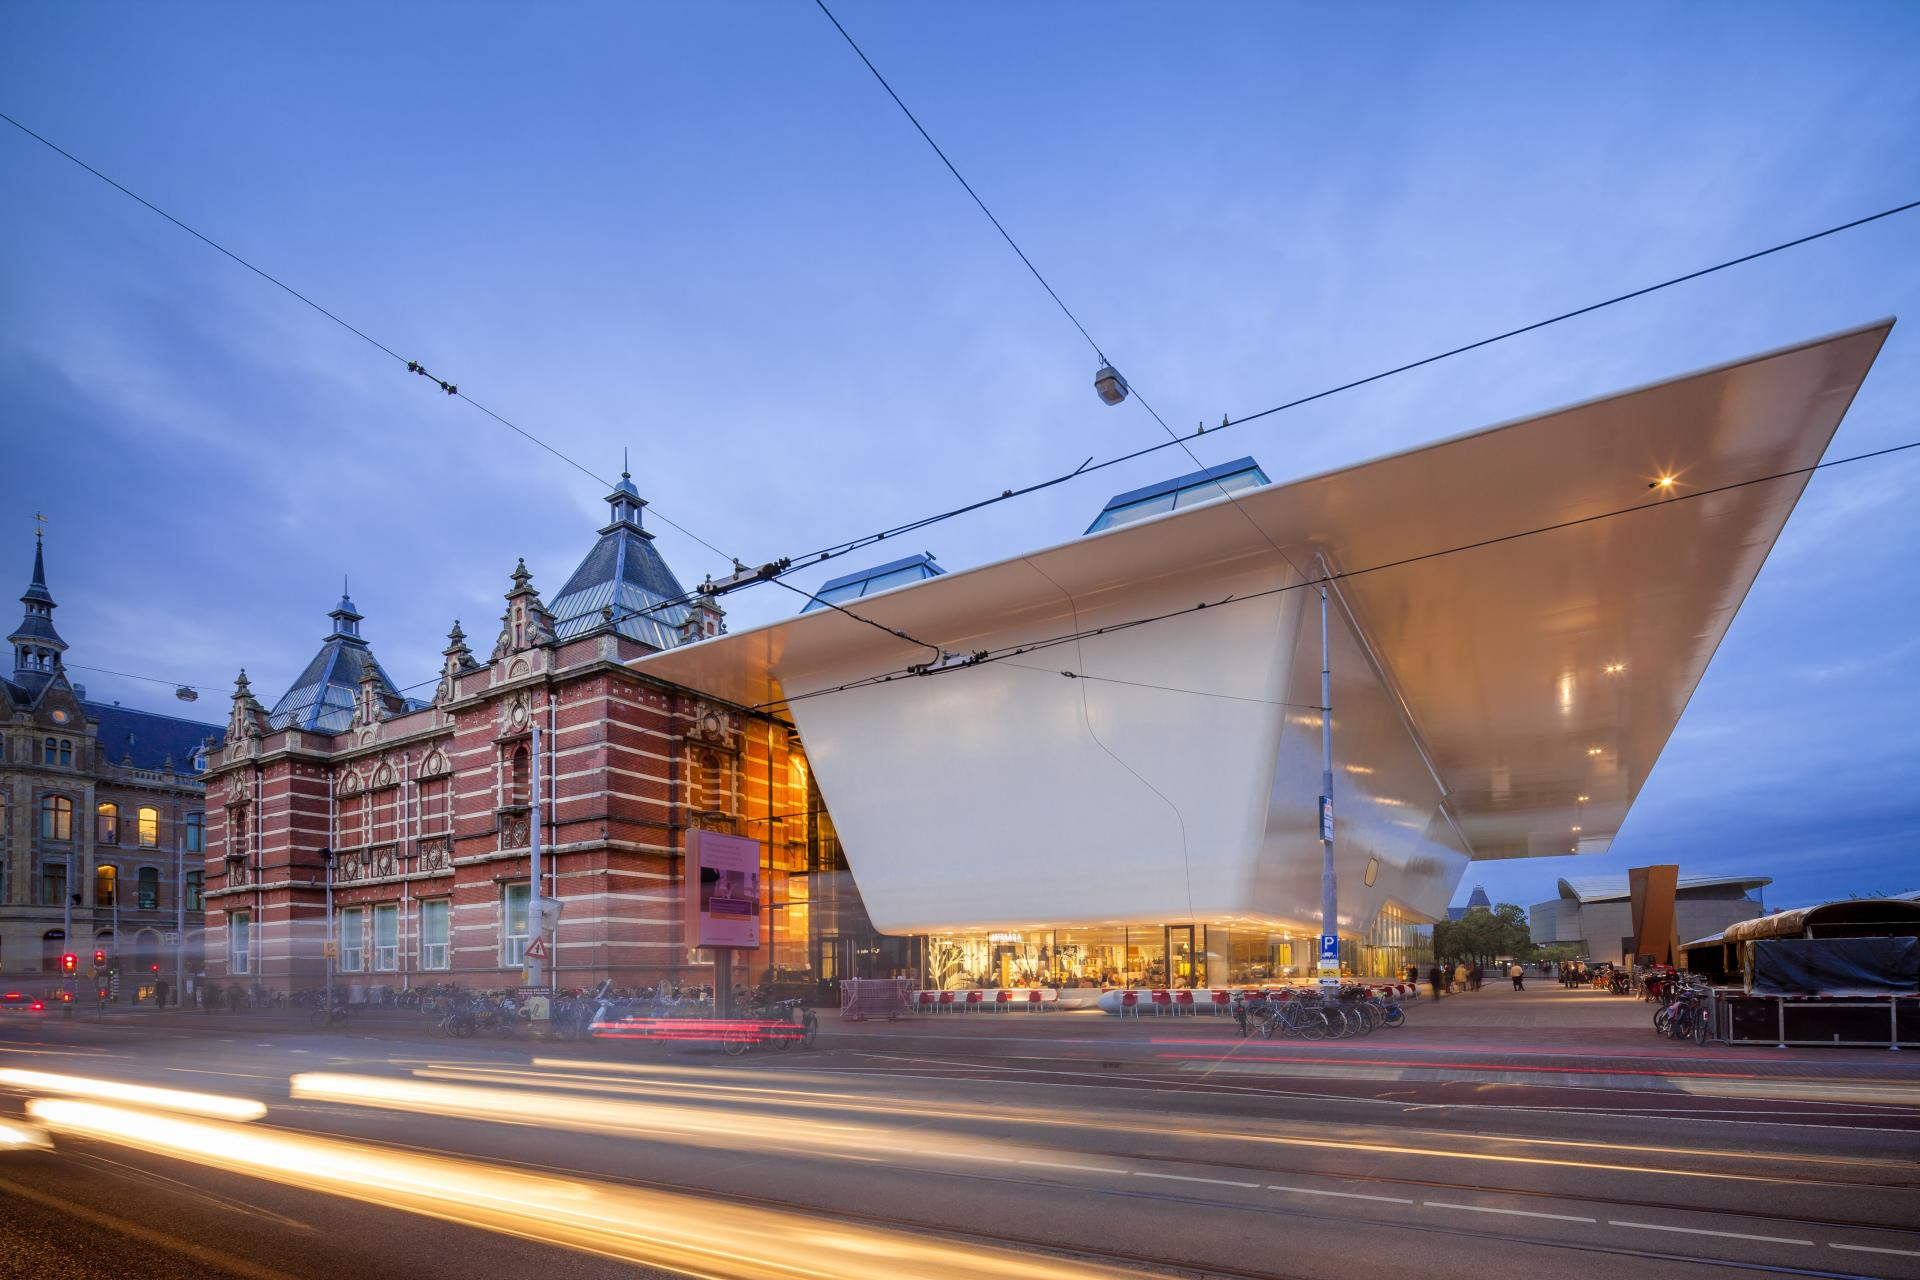 Amsterdams Museum Stedelijk Museum City Museum B Andb Mnque A Home Away